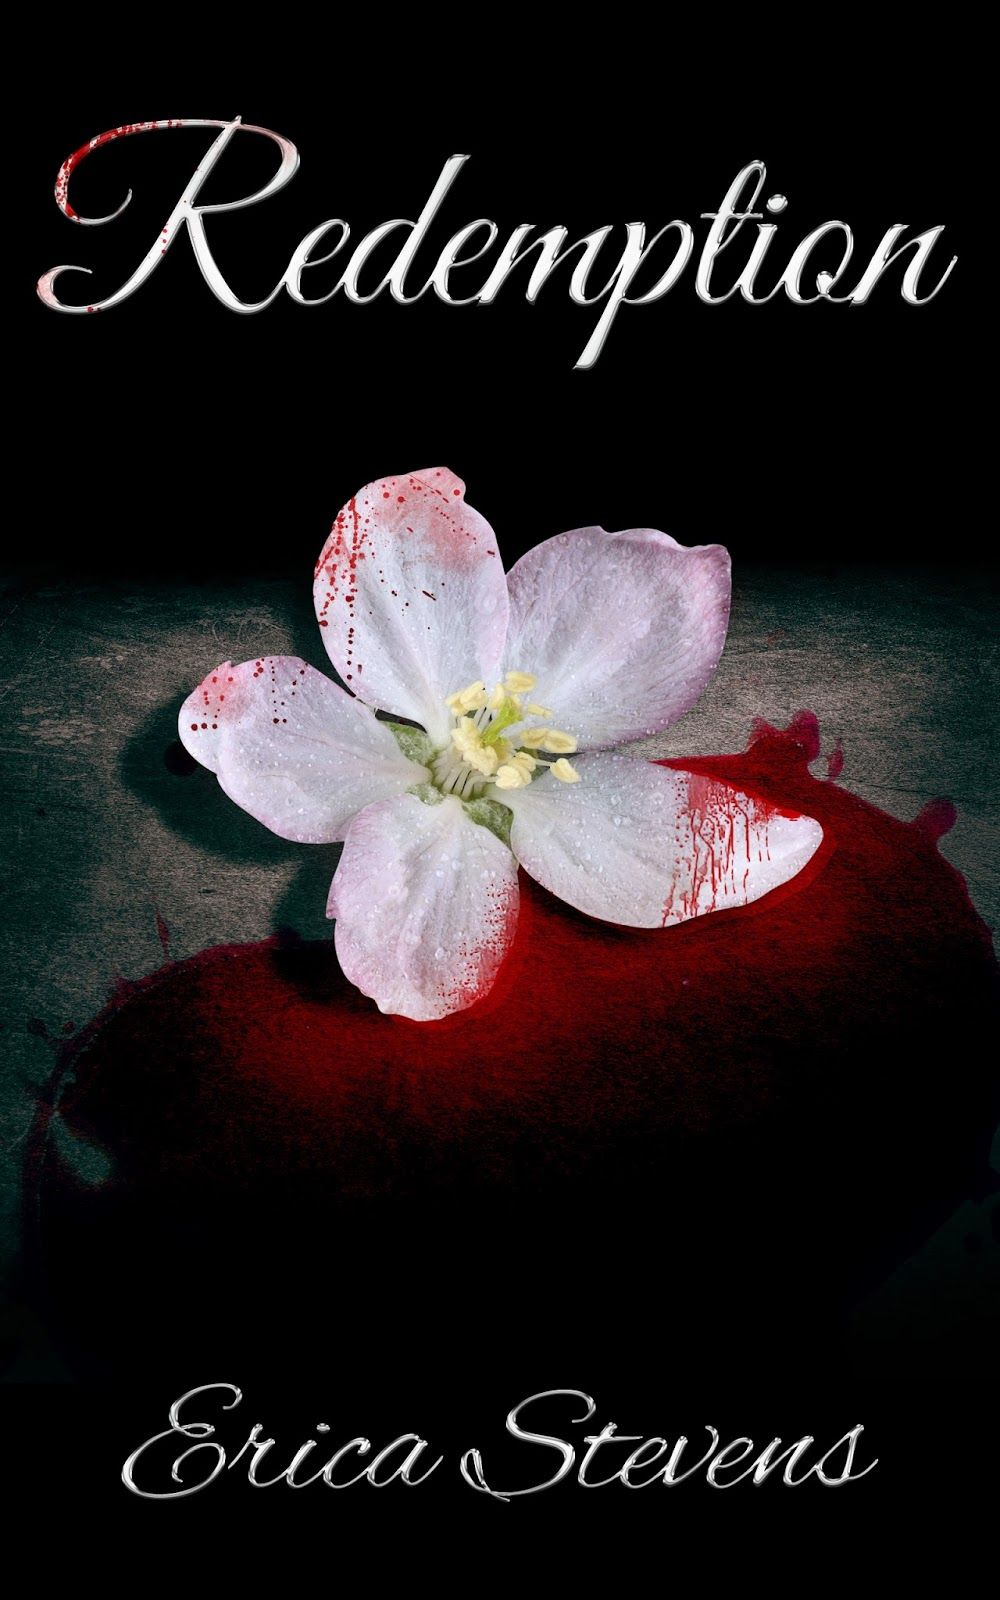 Redemption (the Captive Series, Book An Ebook By Erica Stevens At Smashwords